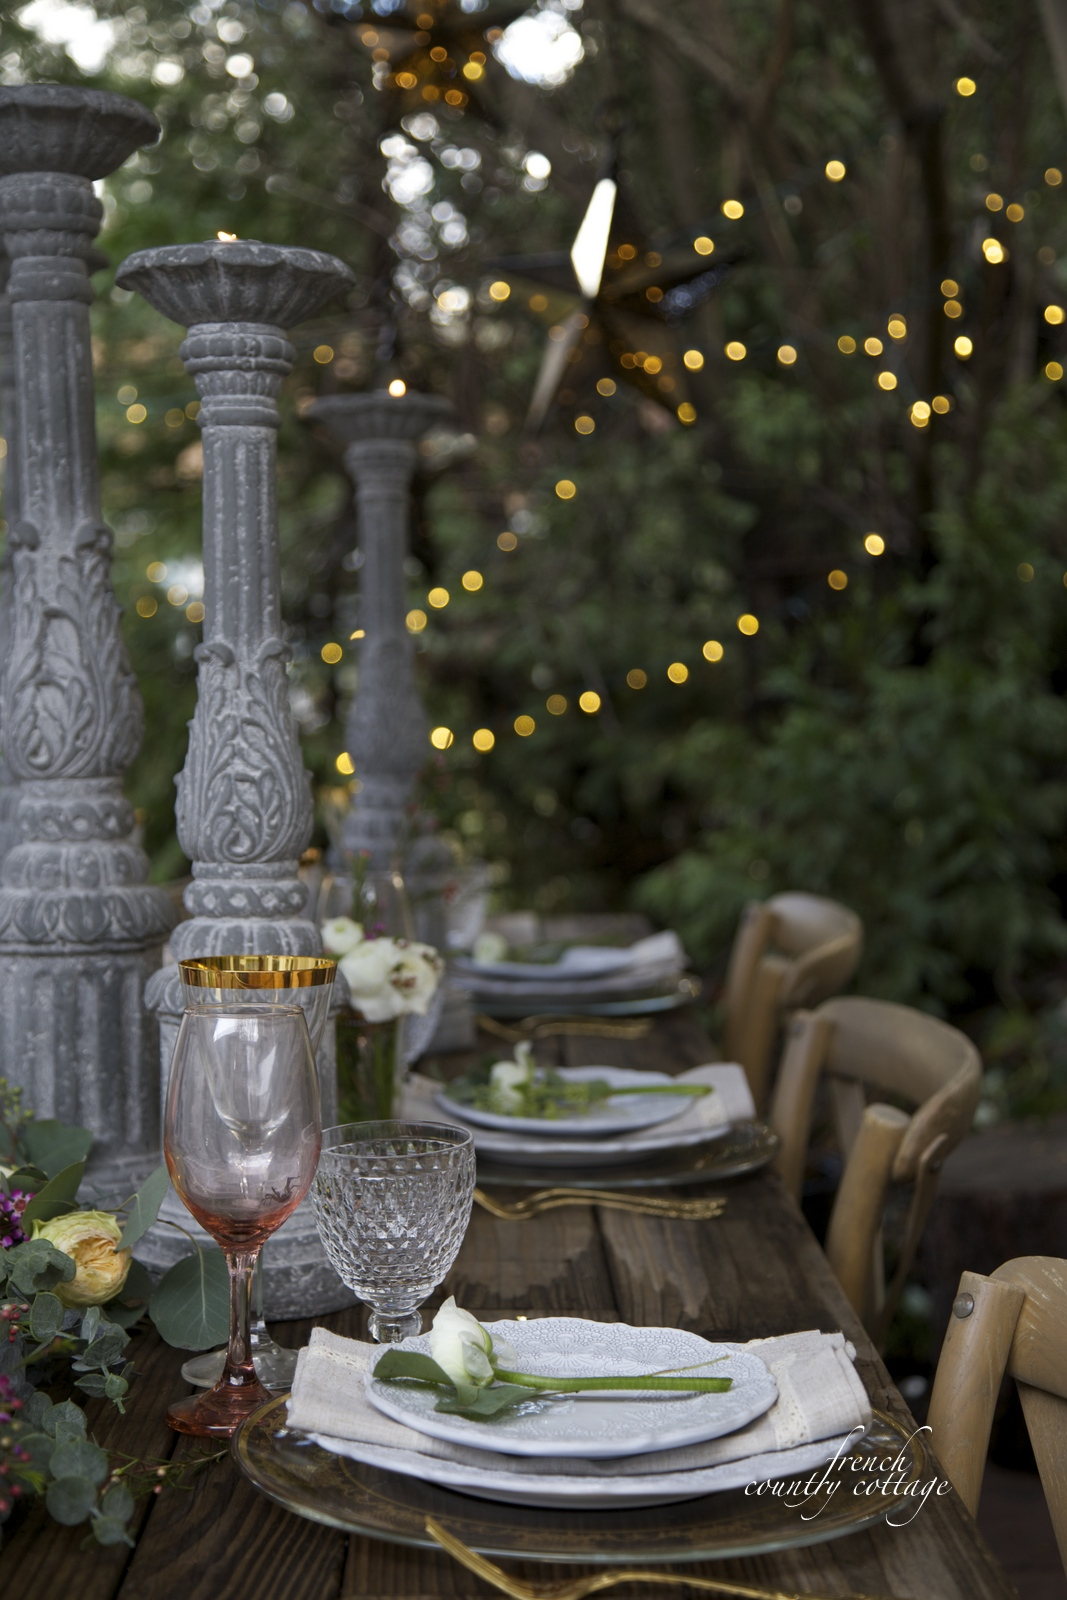 Table setting long view with wine stems and plates and twinkling lights in the background & Simple romantic table on the patio - FRENCH COUNTRY COTTAGE